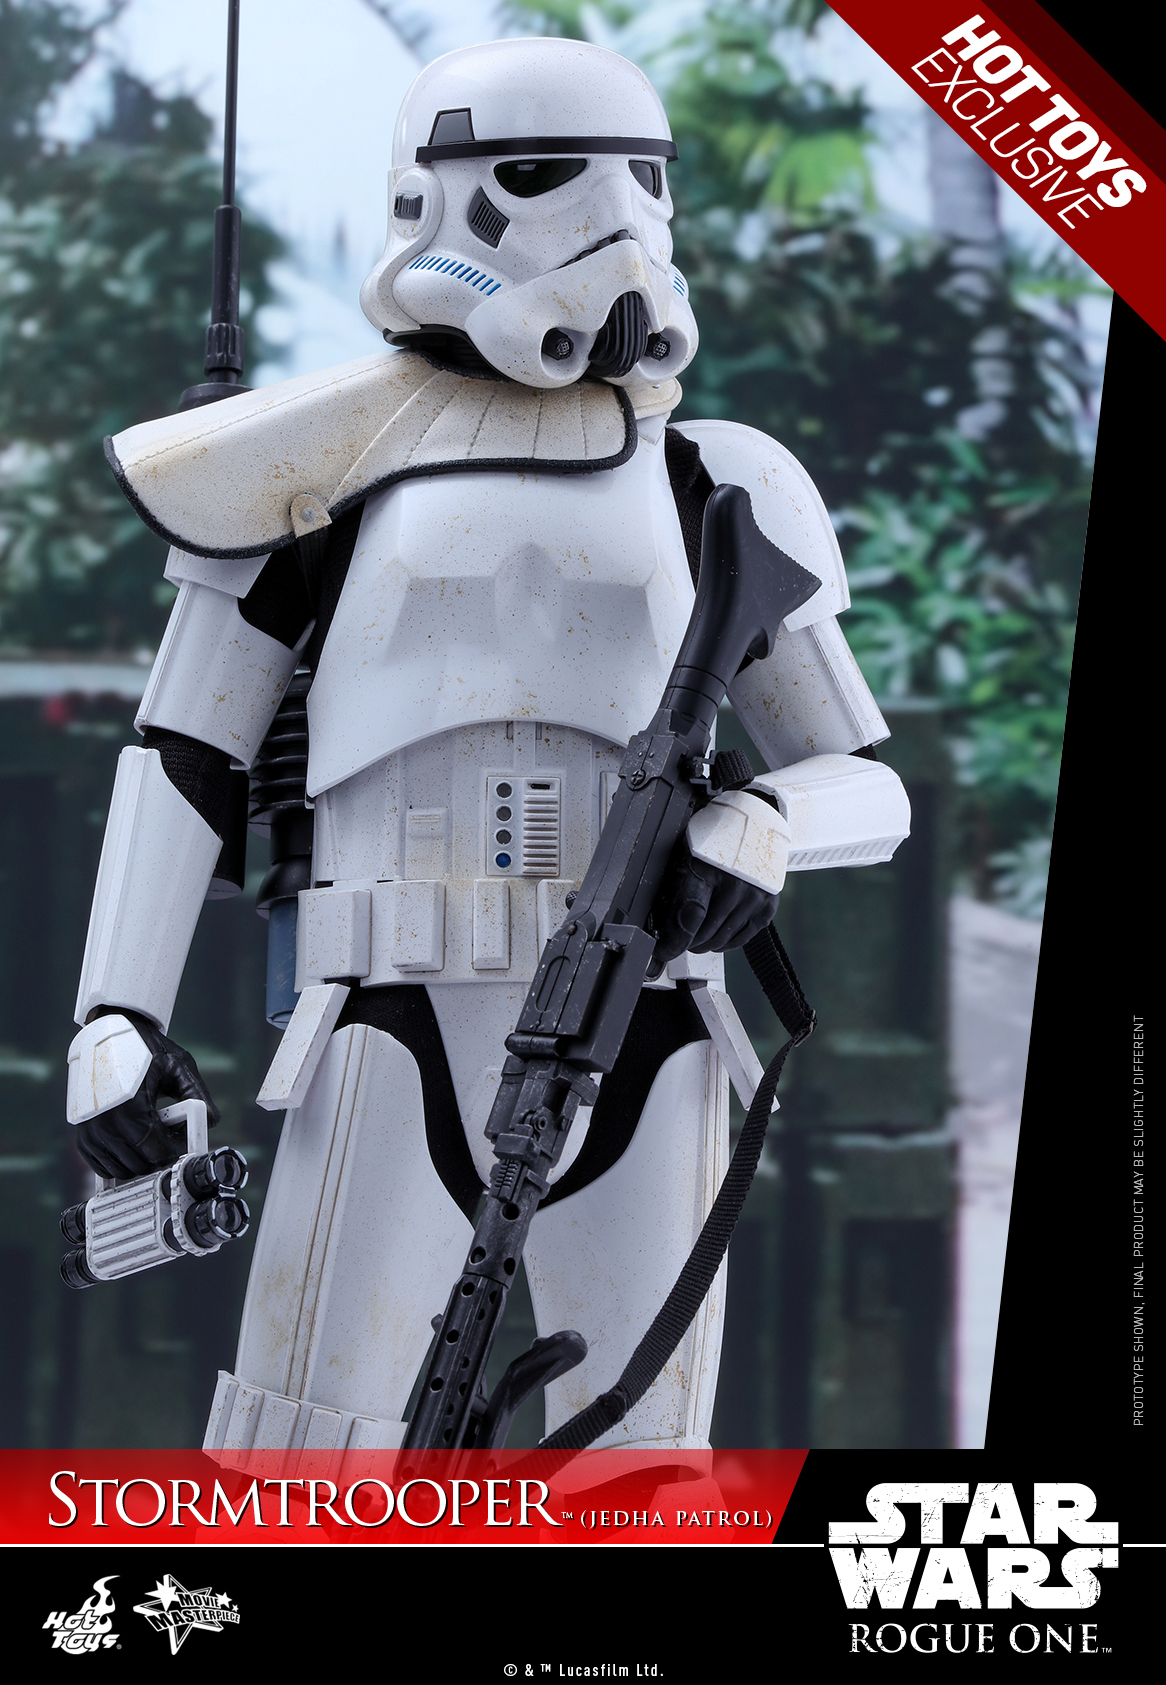 201609_hot-toys-rogue-one-stormtrooper-jedha-patrol-collectible-7